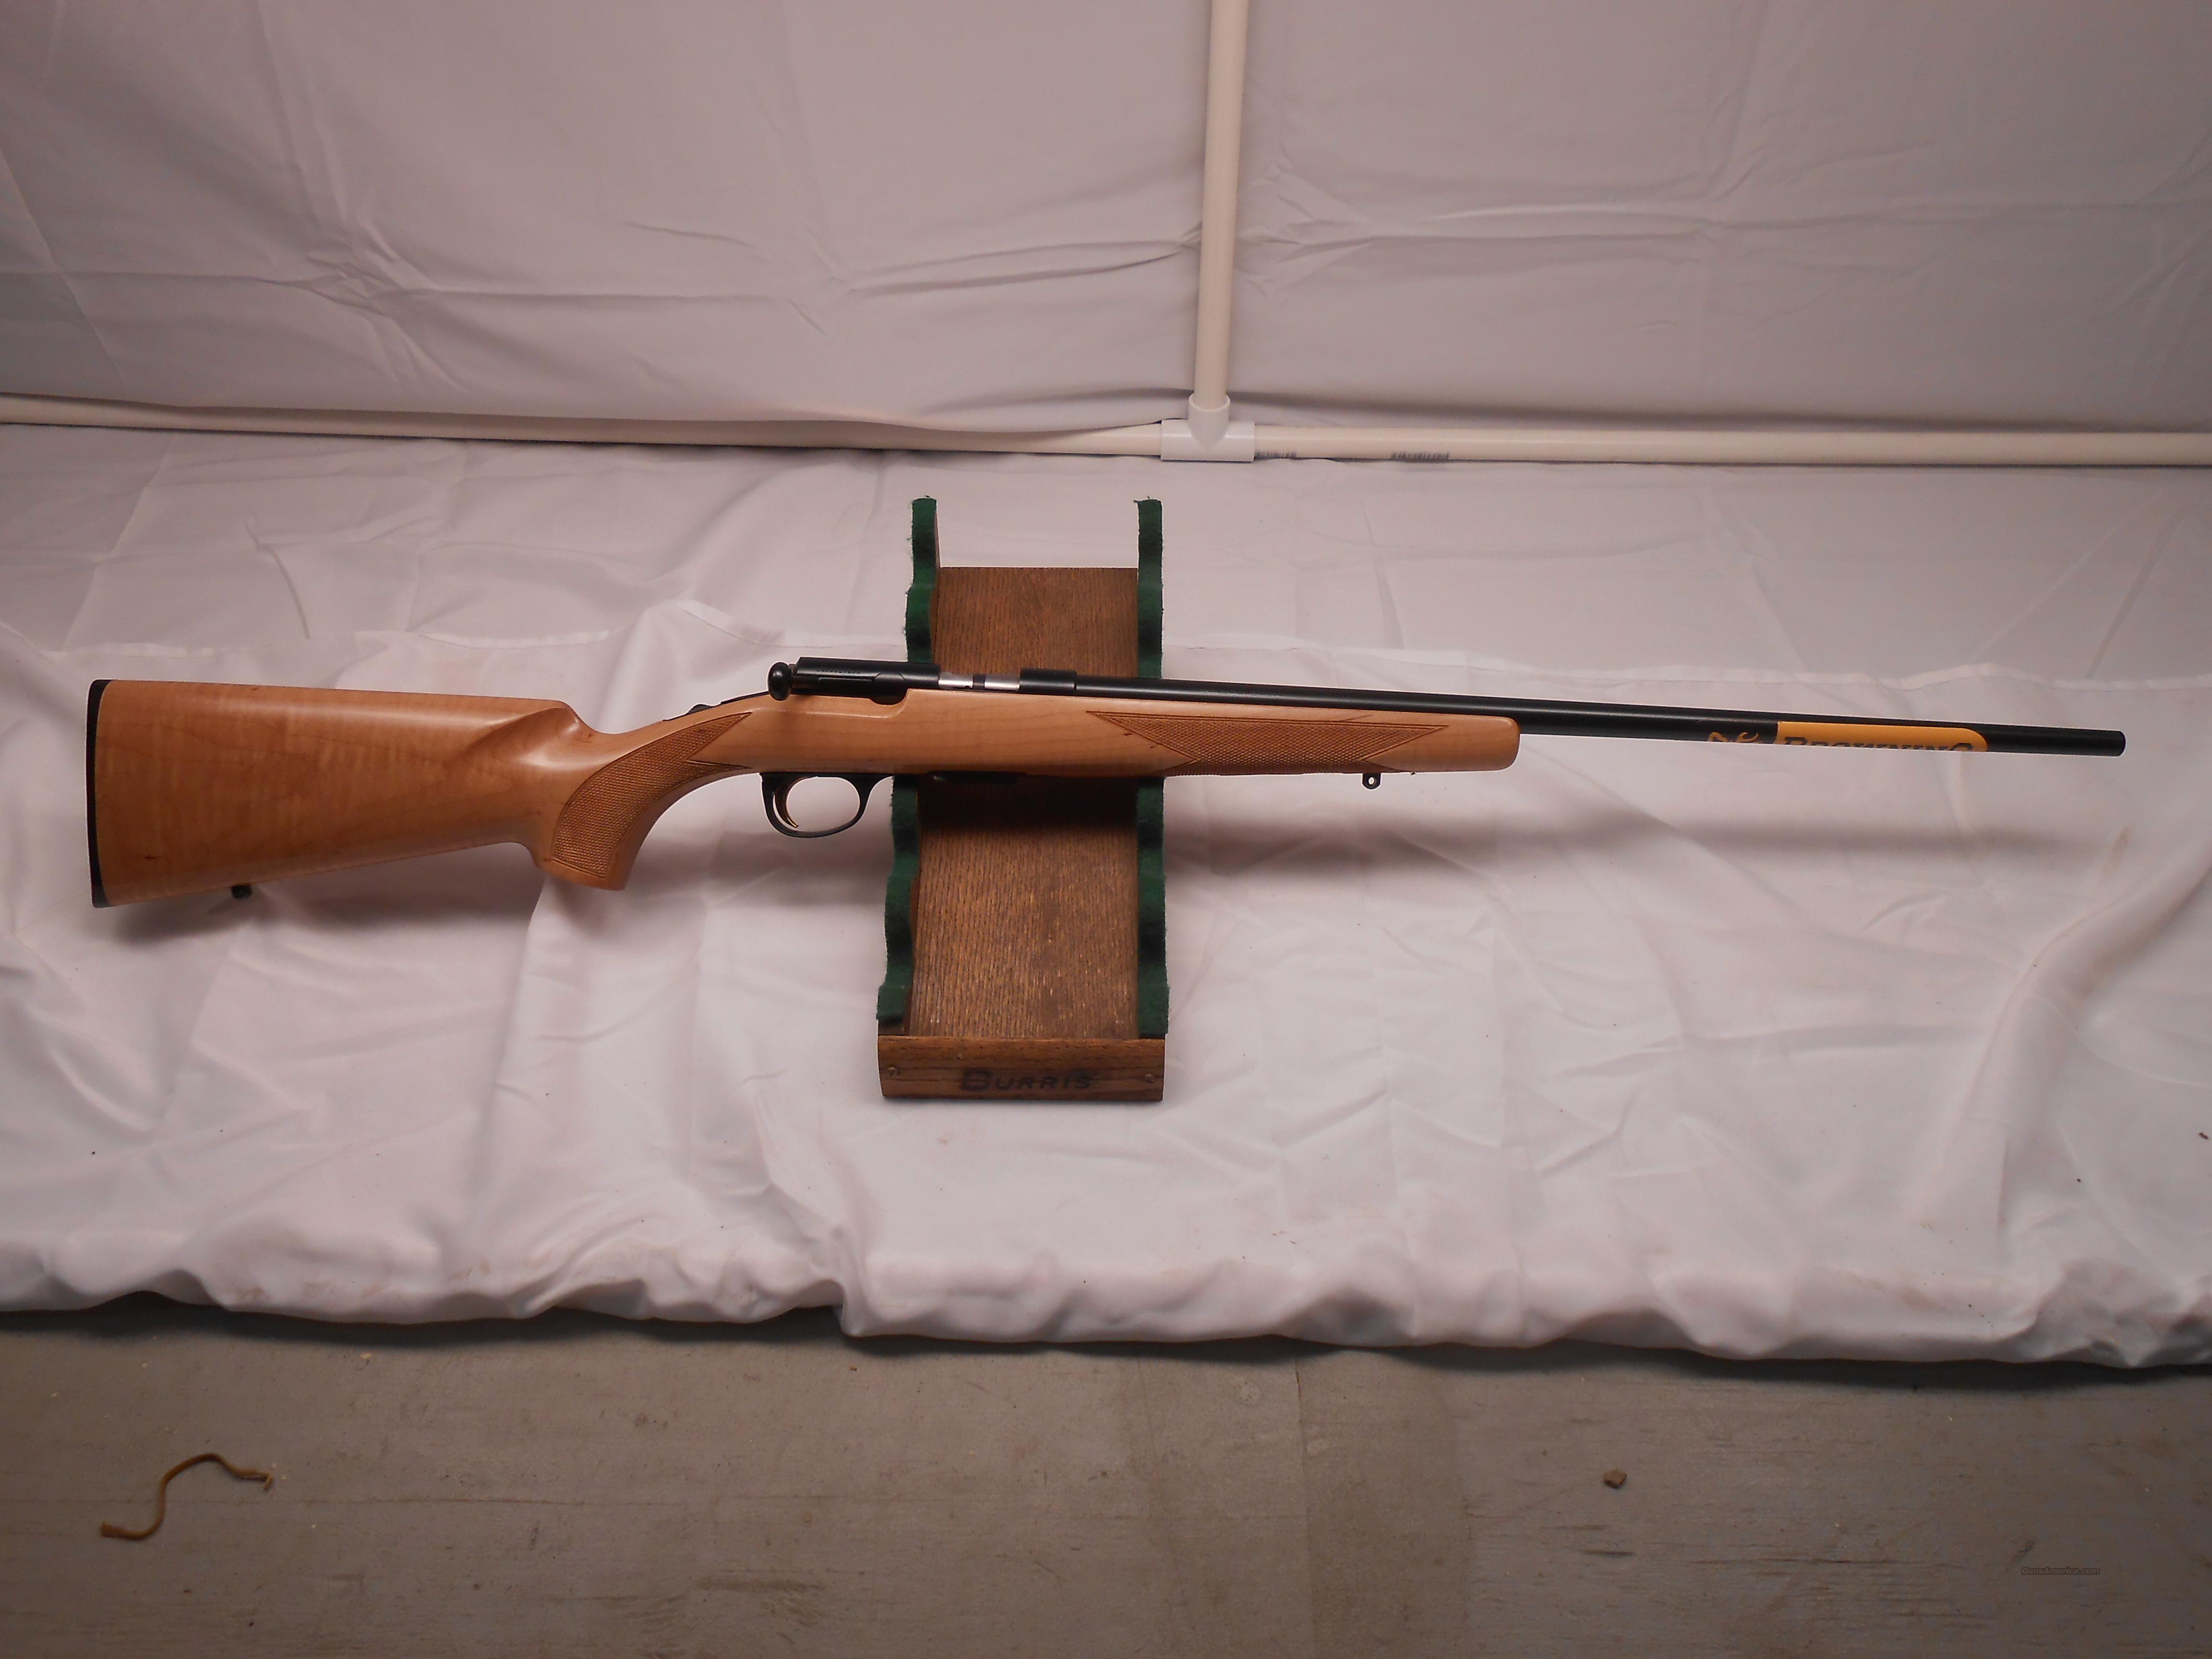 Maple Stock Browning T-Bolt 17HMR  Guns > Rifles > Browning Rifles > Bolt Action > Hunting > Blue